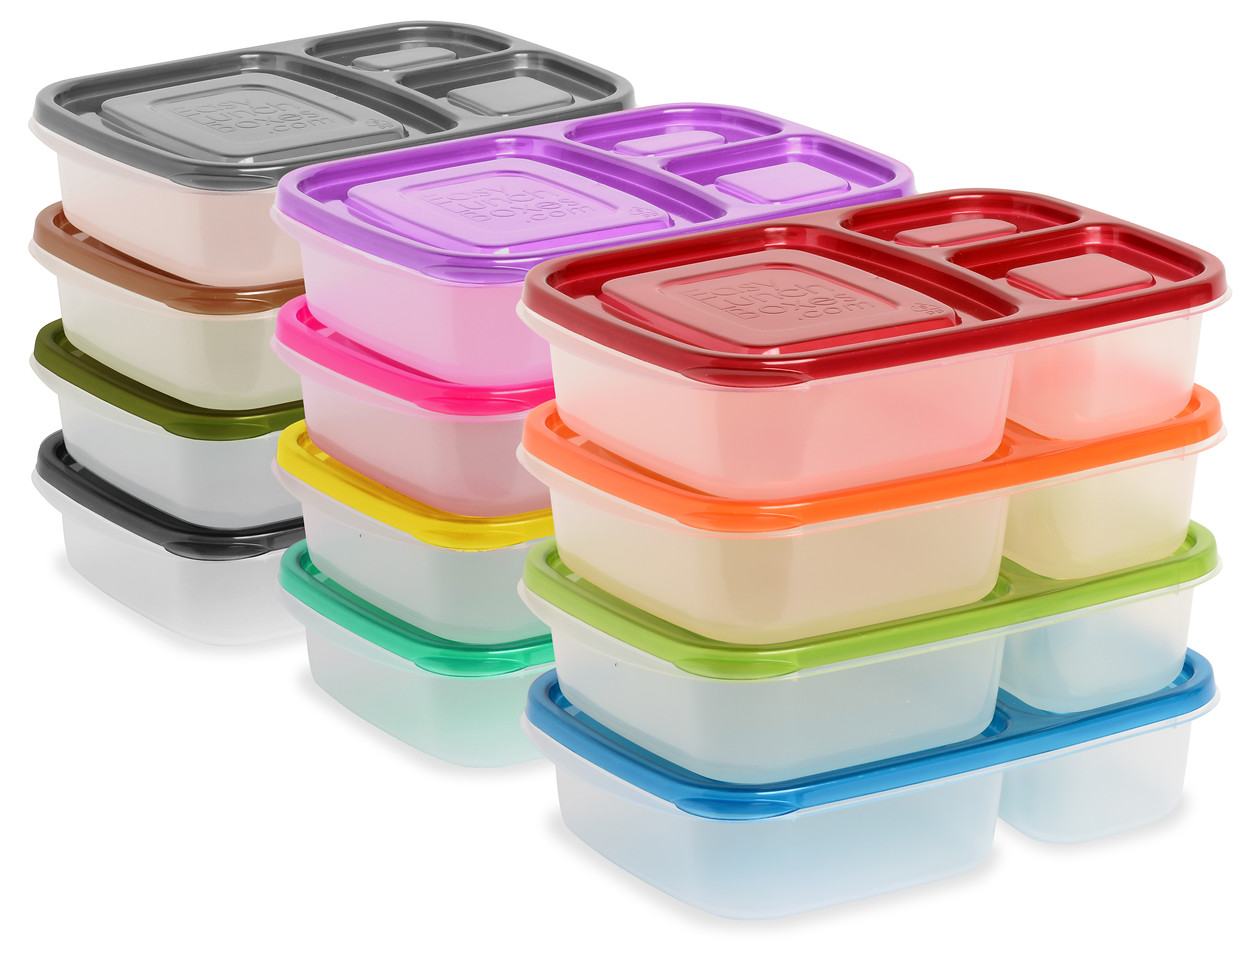 HI RES Urban, Brights, Classic lunch containers